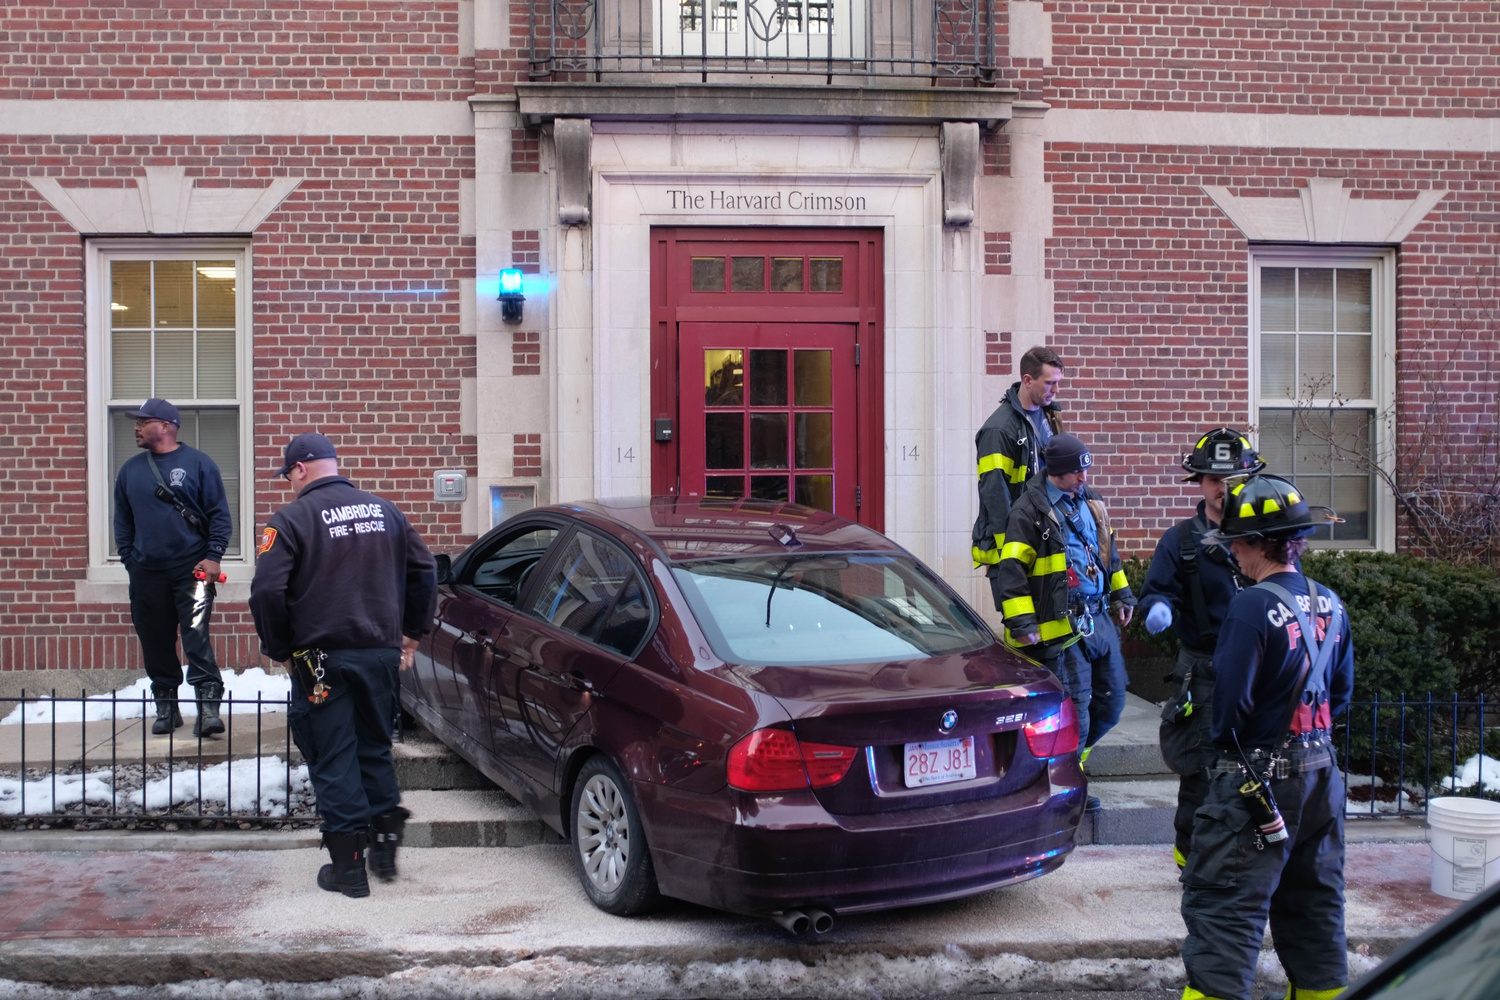 A car crashed into the front door of The Crimson Monday evening, damaging the exterior of the building. The driver sustained minor injuries.